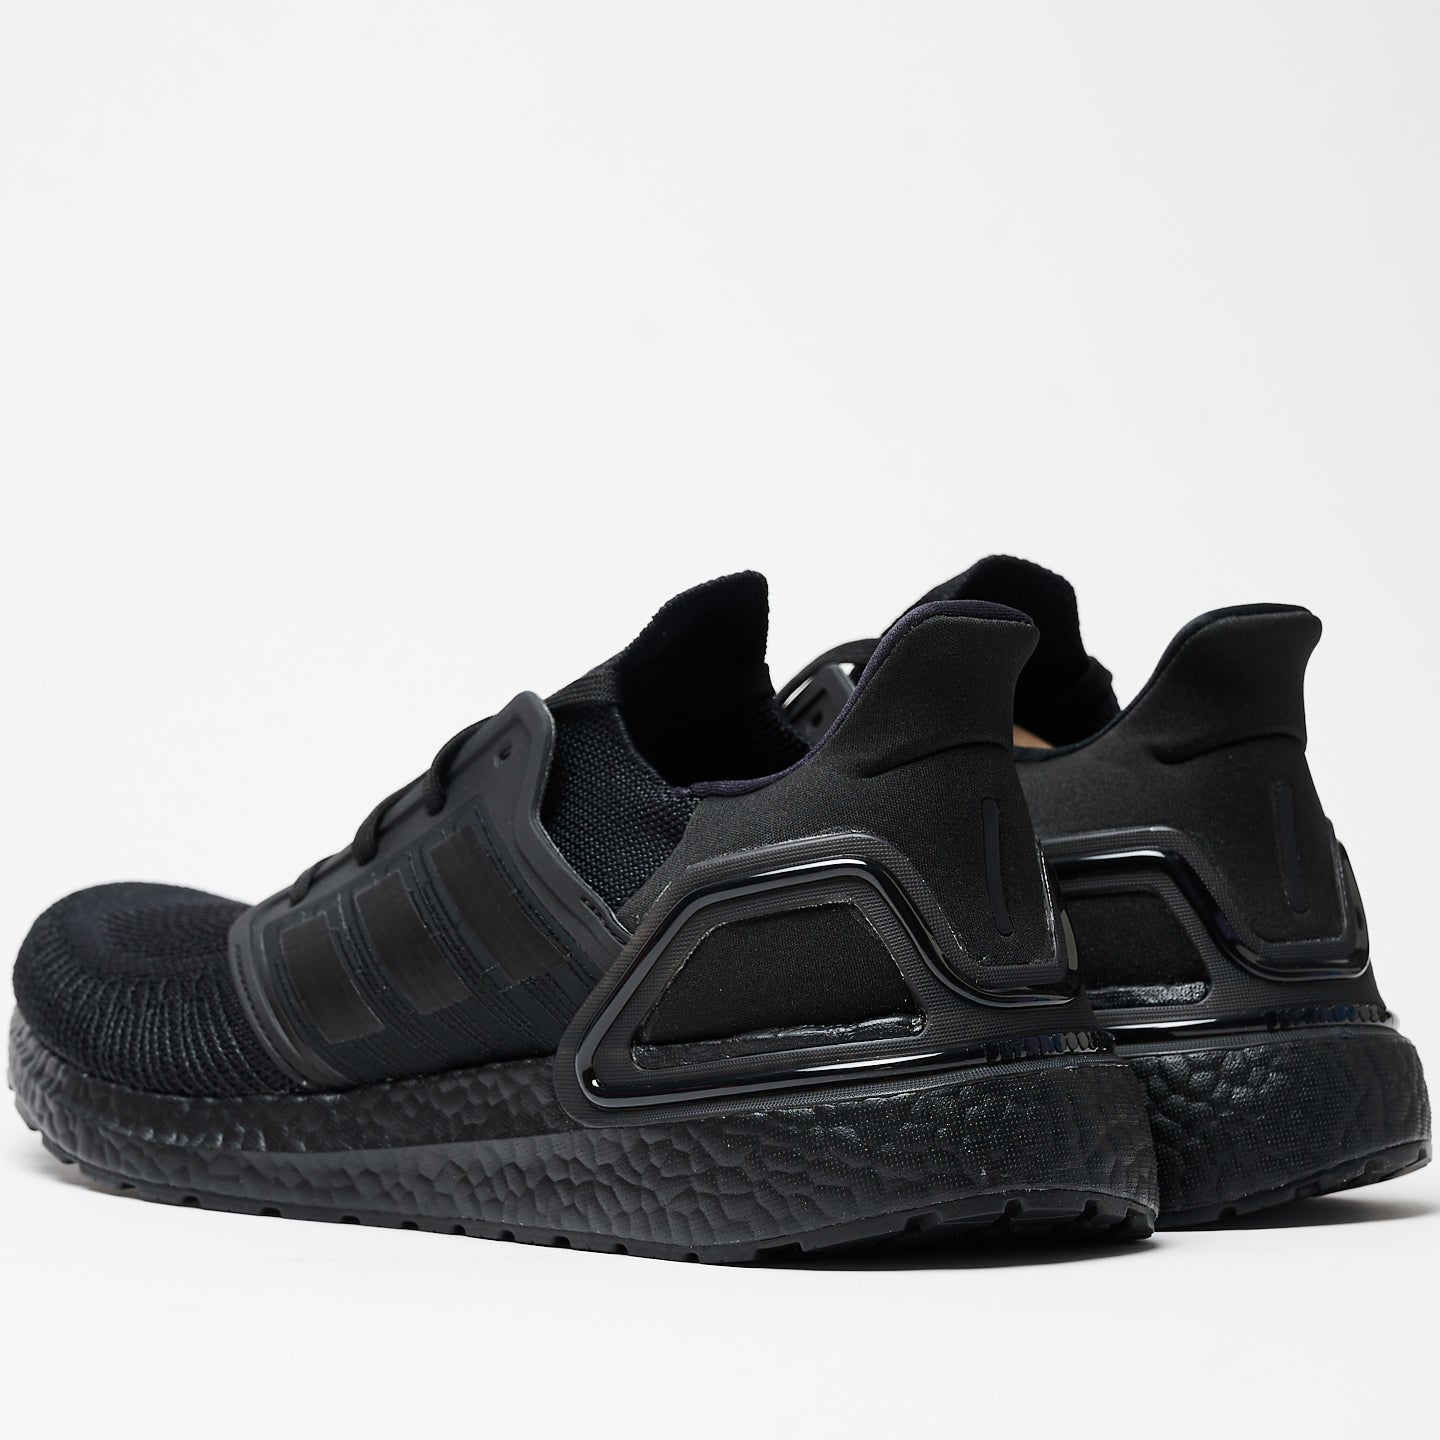 ULTRABOOST 20 - CORE BLACK / CORE BLACK / SOLAR RED